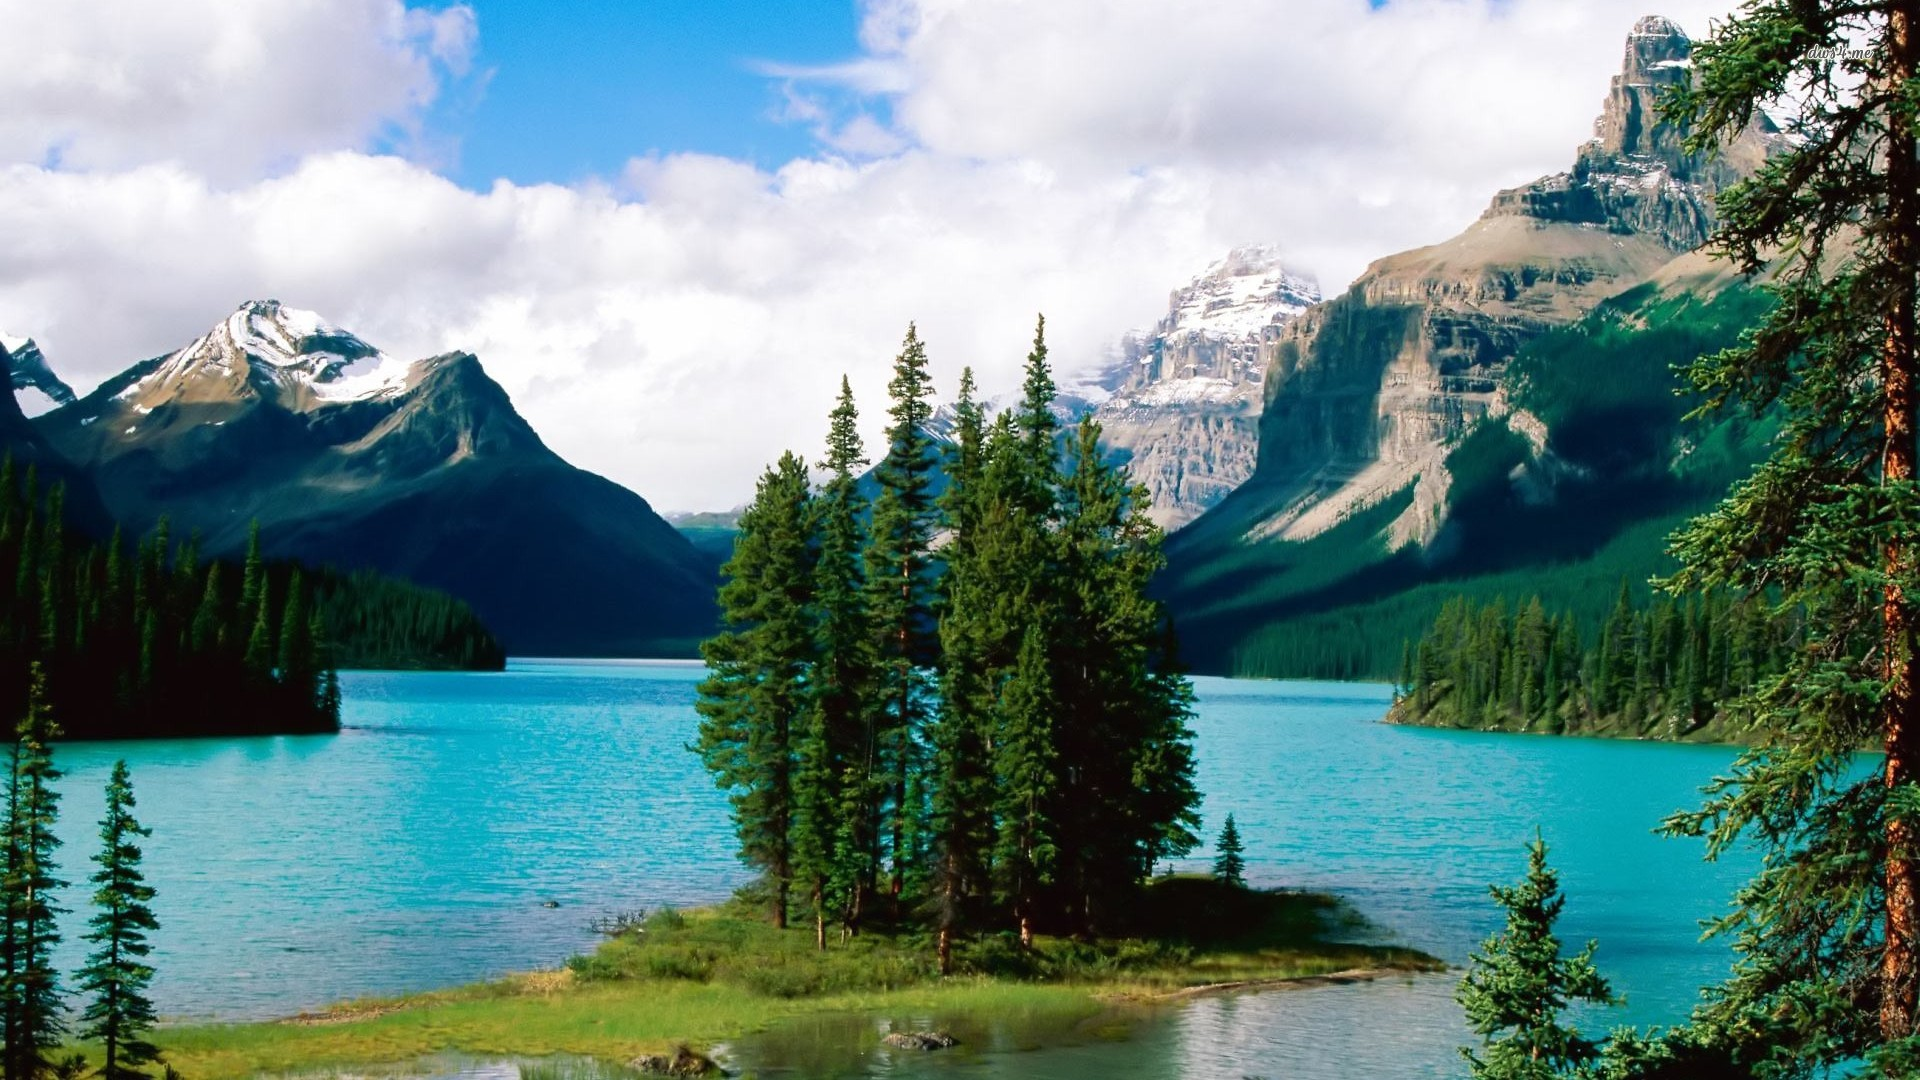 Jasper national park wallpapers pictures images for 3d wallpaper canada